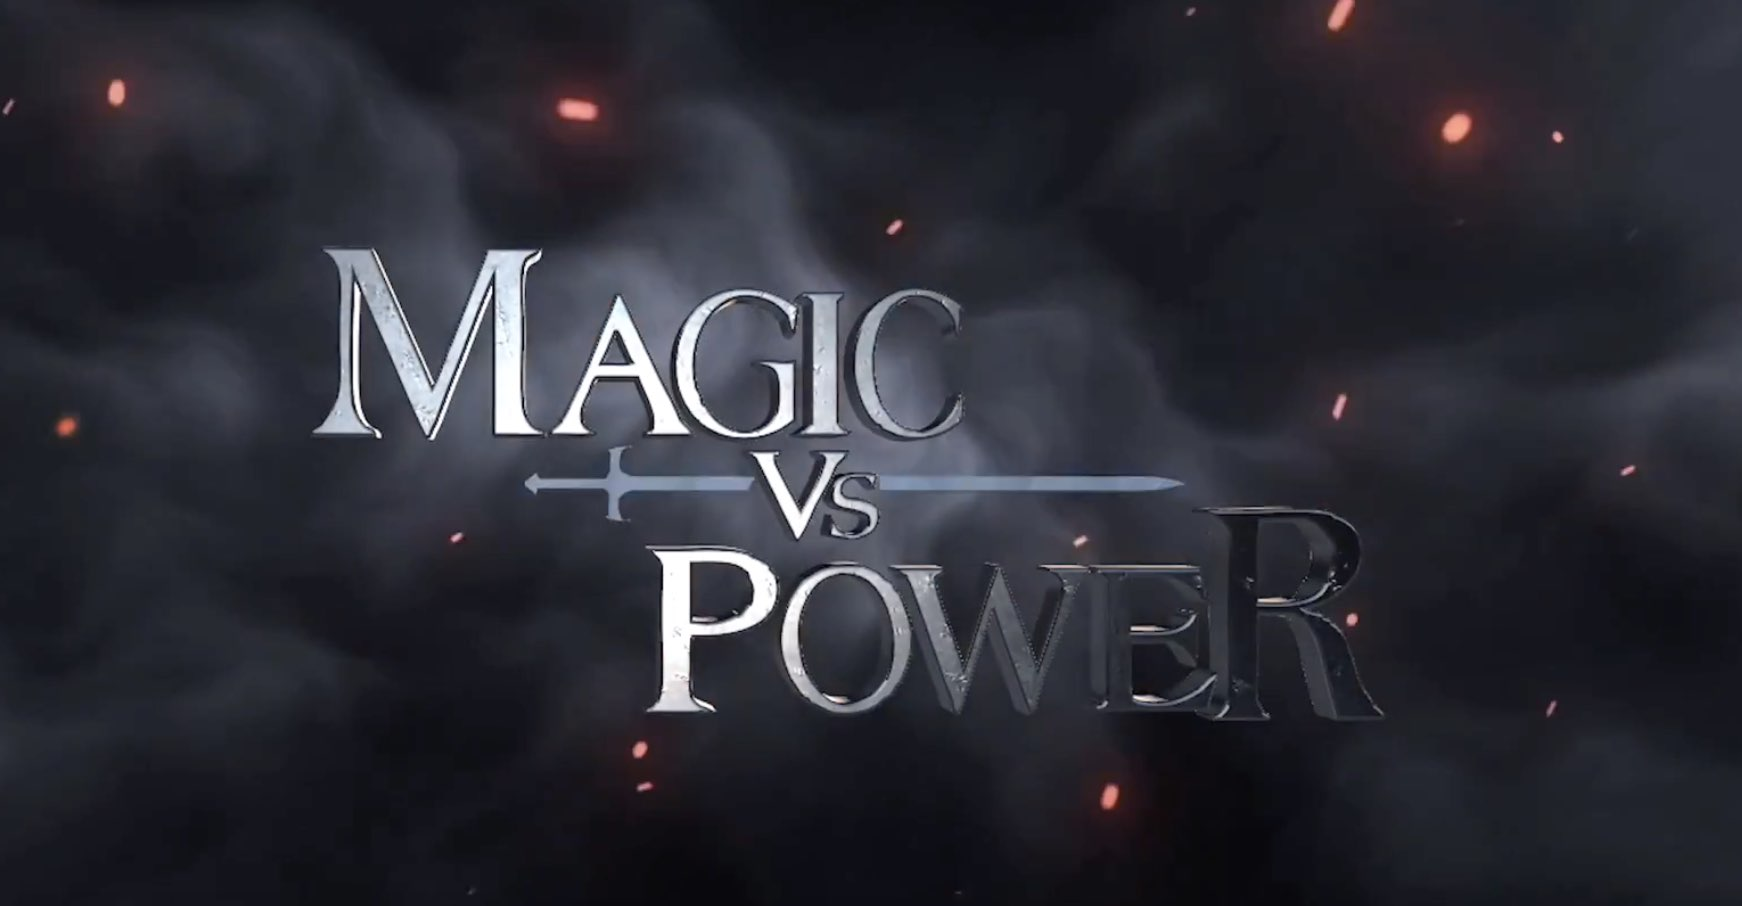 Magic vs Power hack